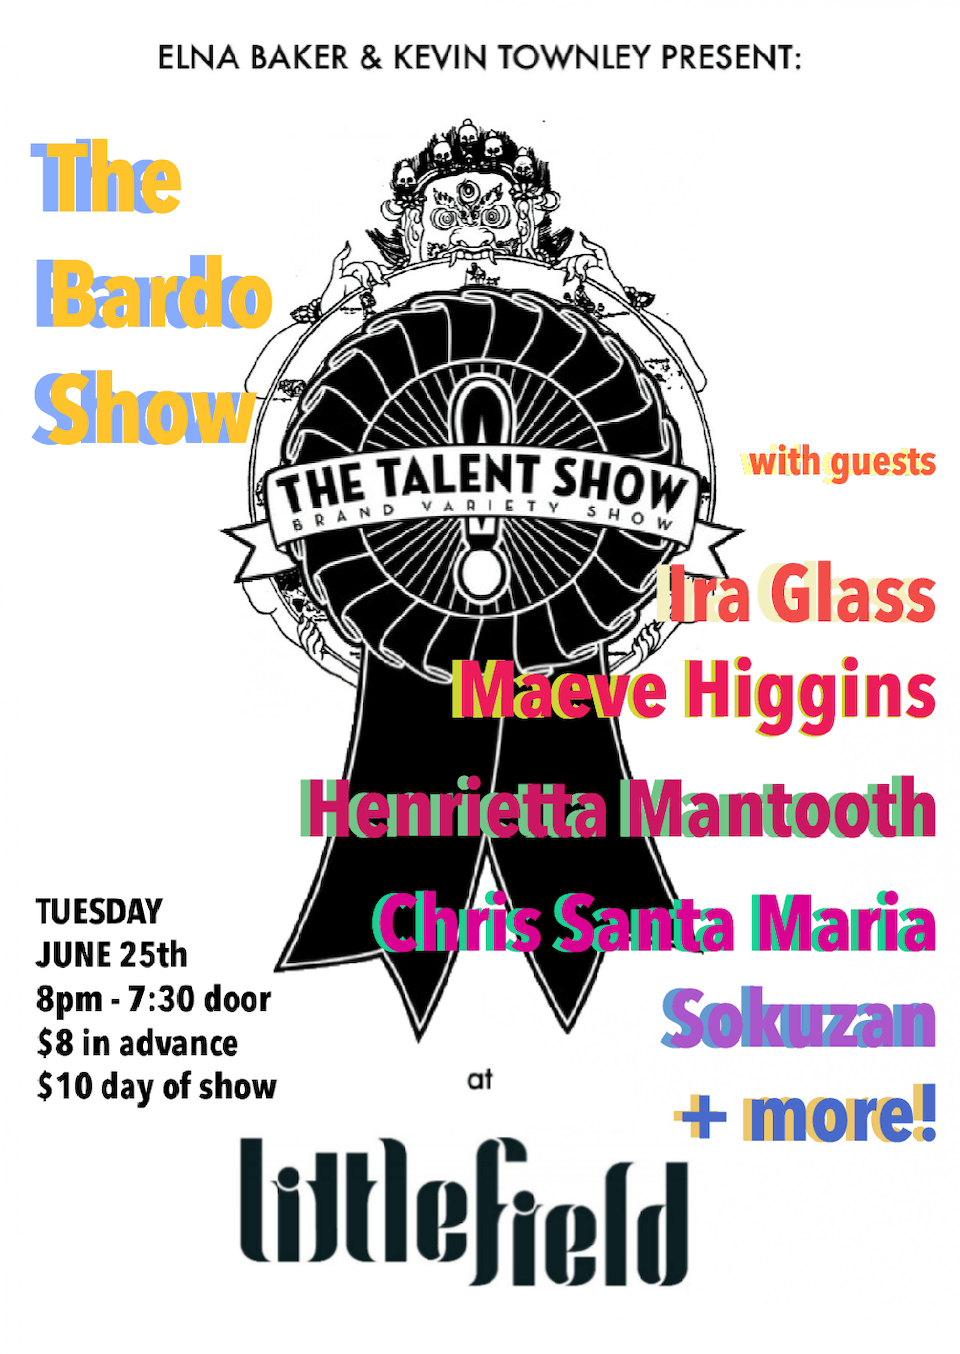 The Talent Show: The Bardo Show